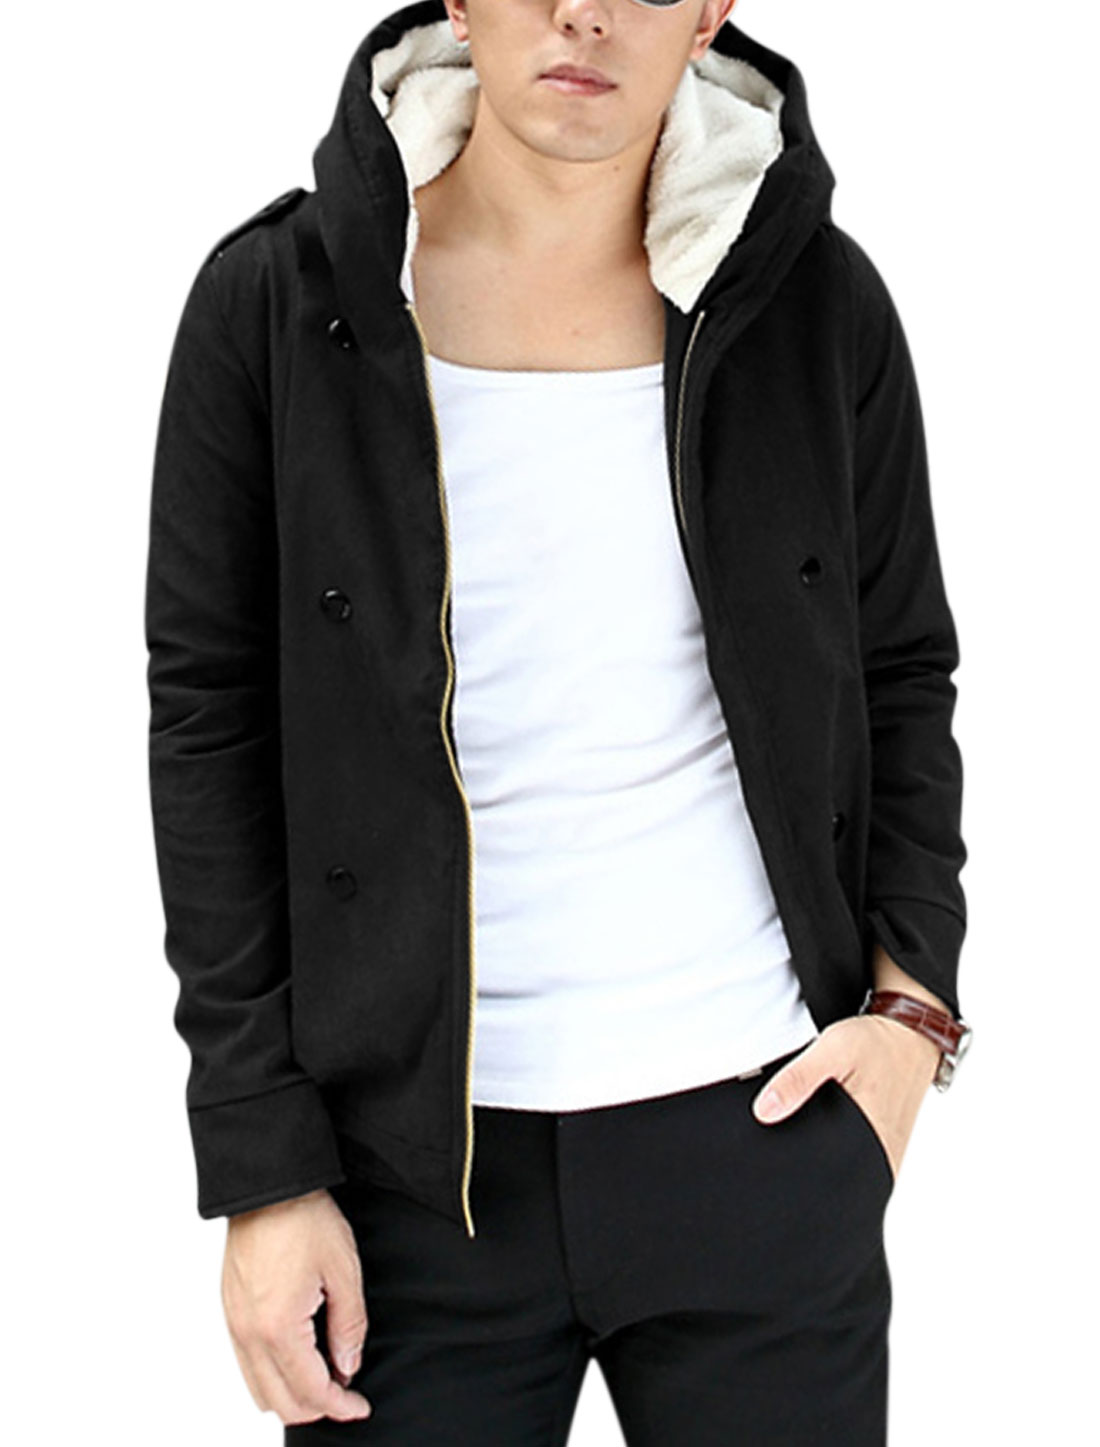 Men Zip Closed Long Sleeves Plush Lined Hooded Heavy Jacket Black S